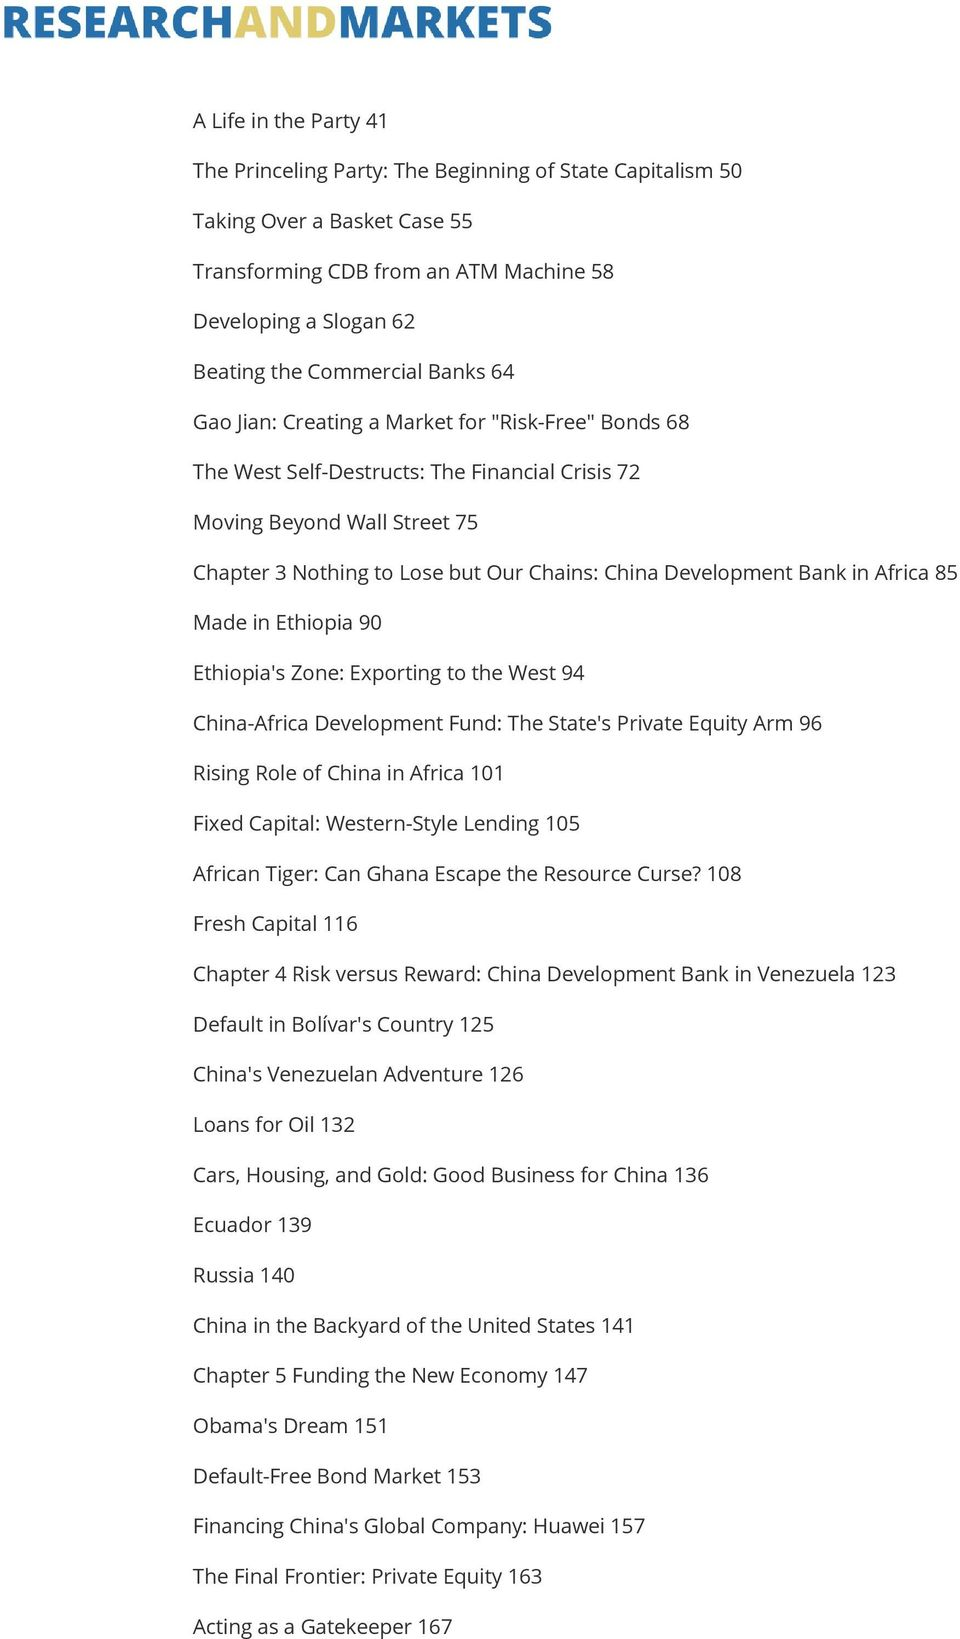 Bank in Africa 85 Made in Ethiopia 90 Ethiopia's Zone: Exporting to the West 94 China-Africa Development Fund: The State's Private Equity Arm 96 Rising Role of China in Africa 101 Fixed Capital: